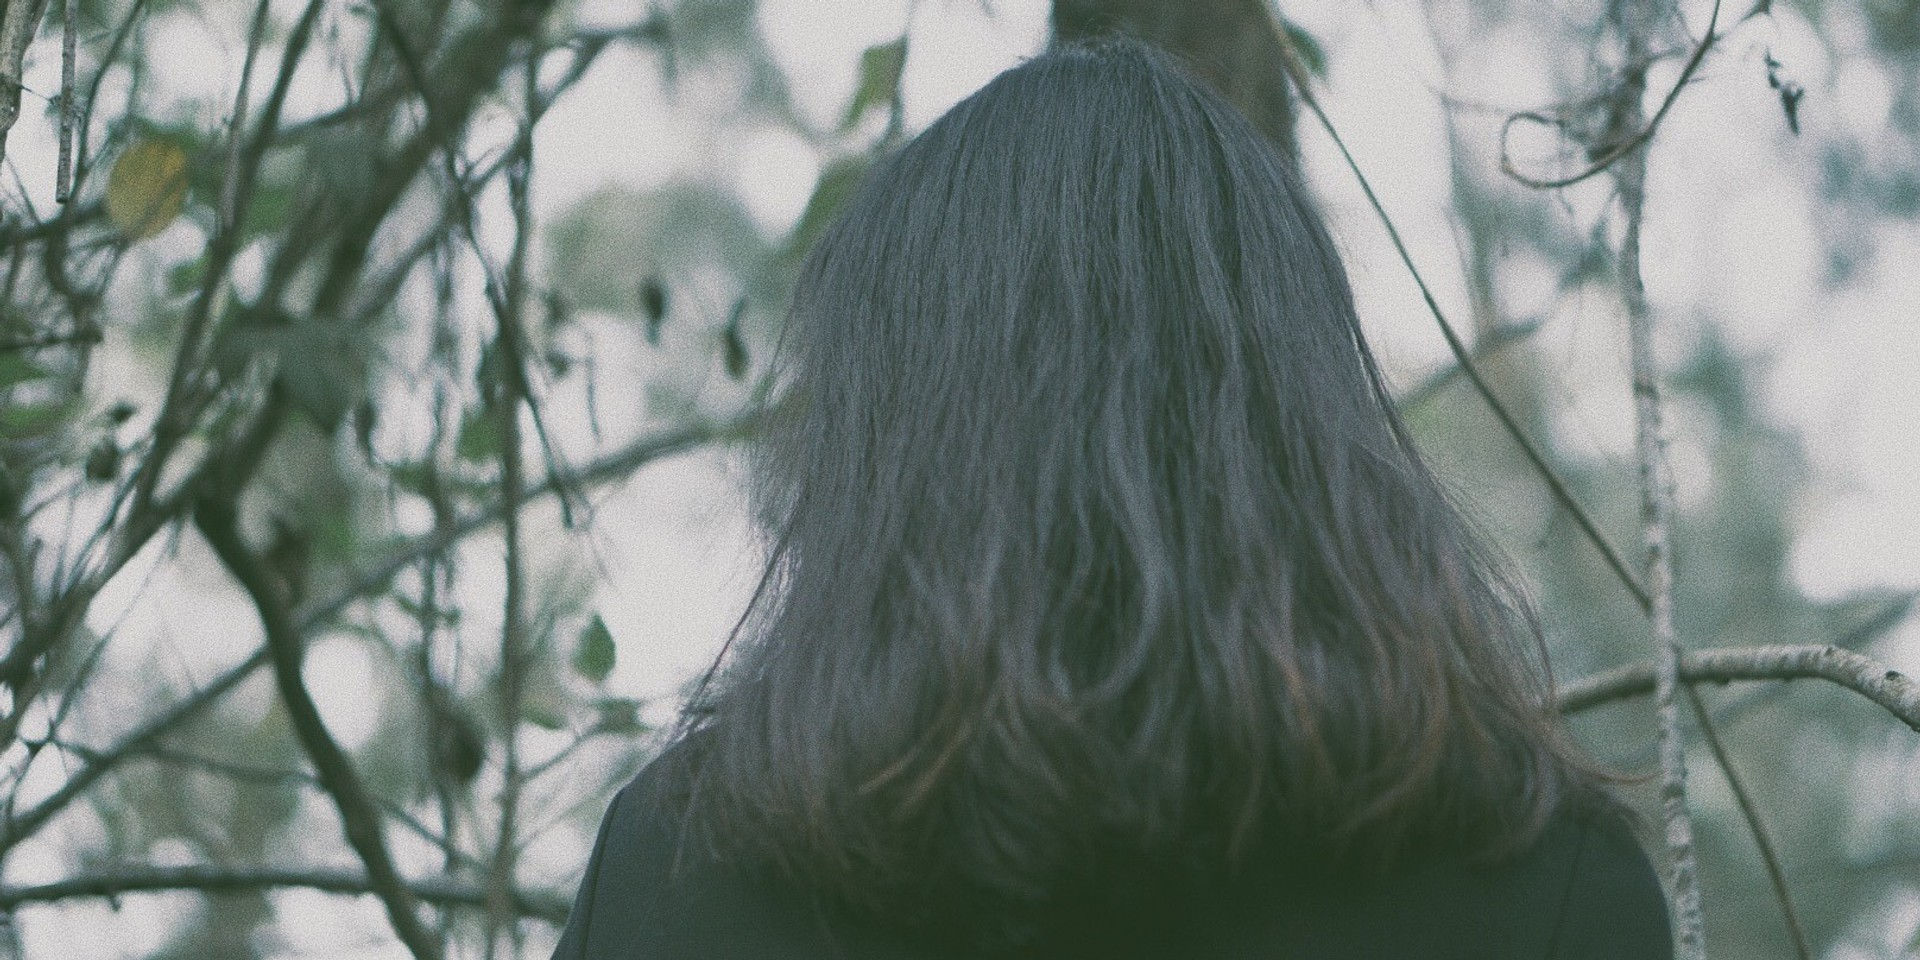 LISTEN: Loneliness washes over Jasmine Sokko on new single 'H2O', co-produced by Yllis